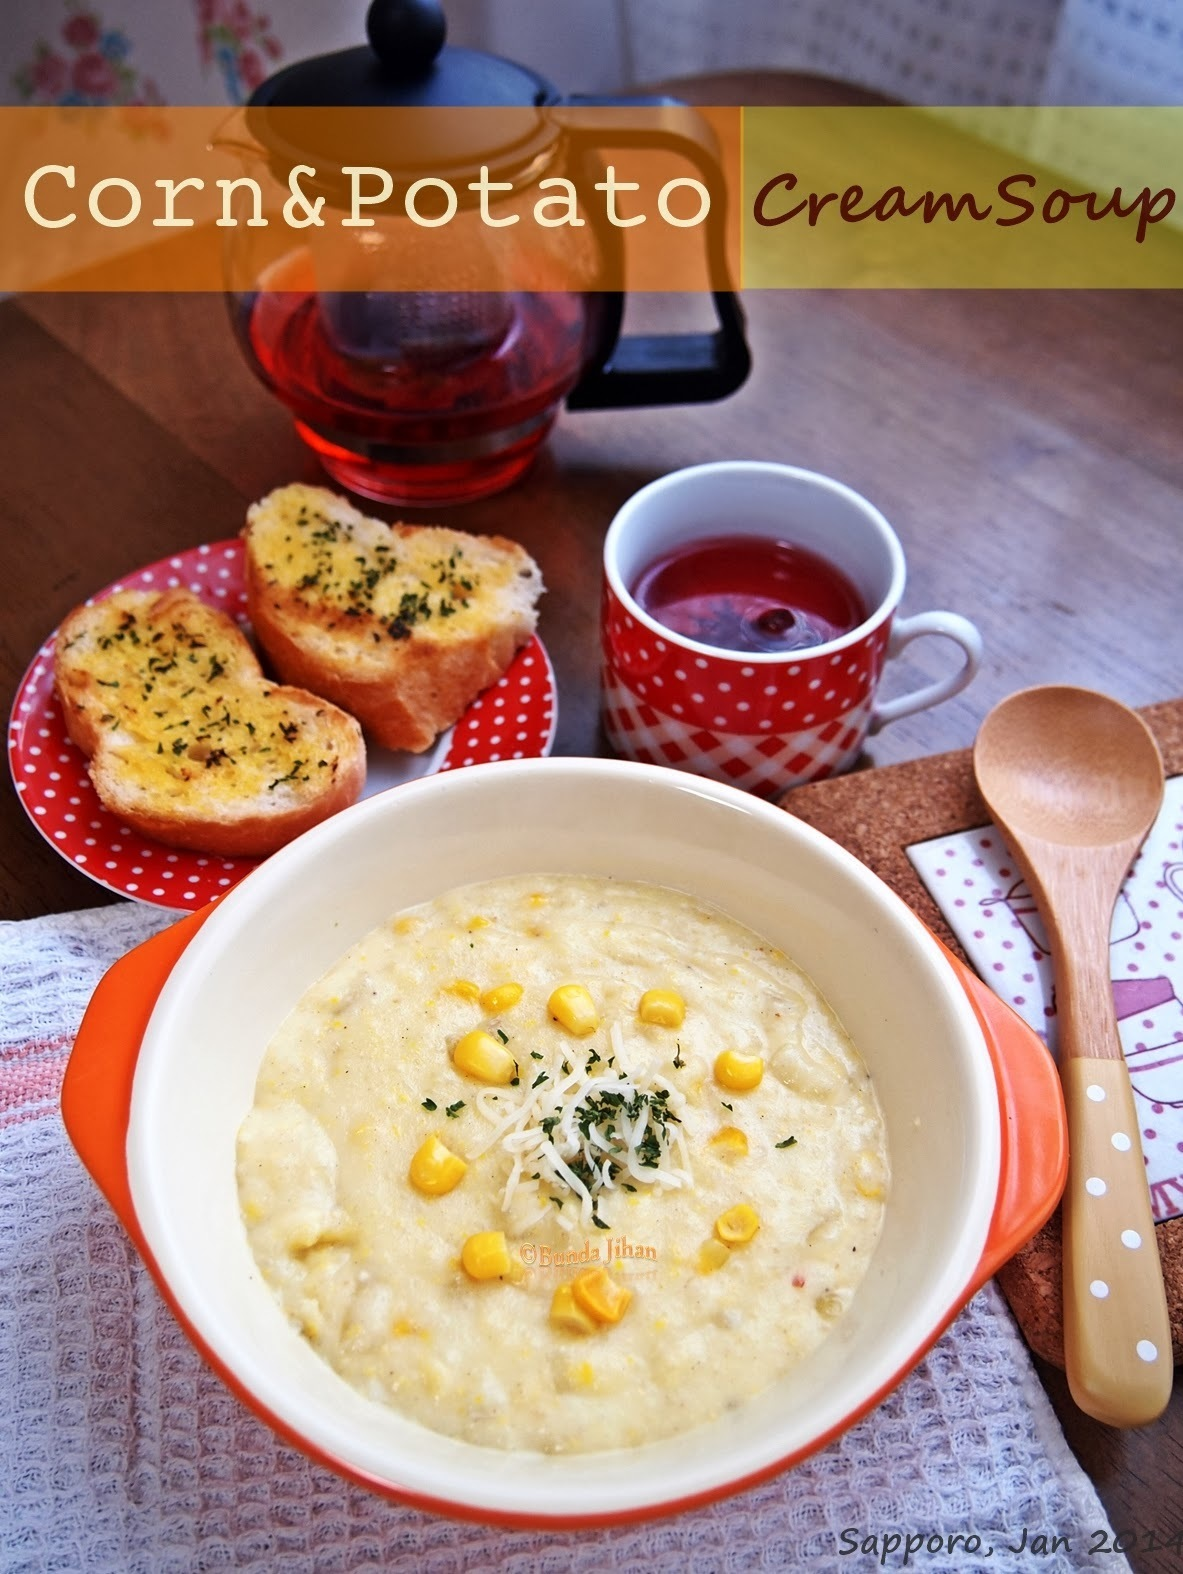 Sup Krim Jagung dan Kentang ( Corn and Potato Cream Soup )